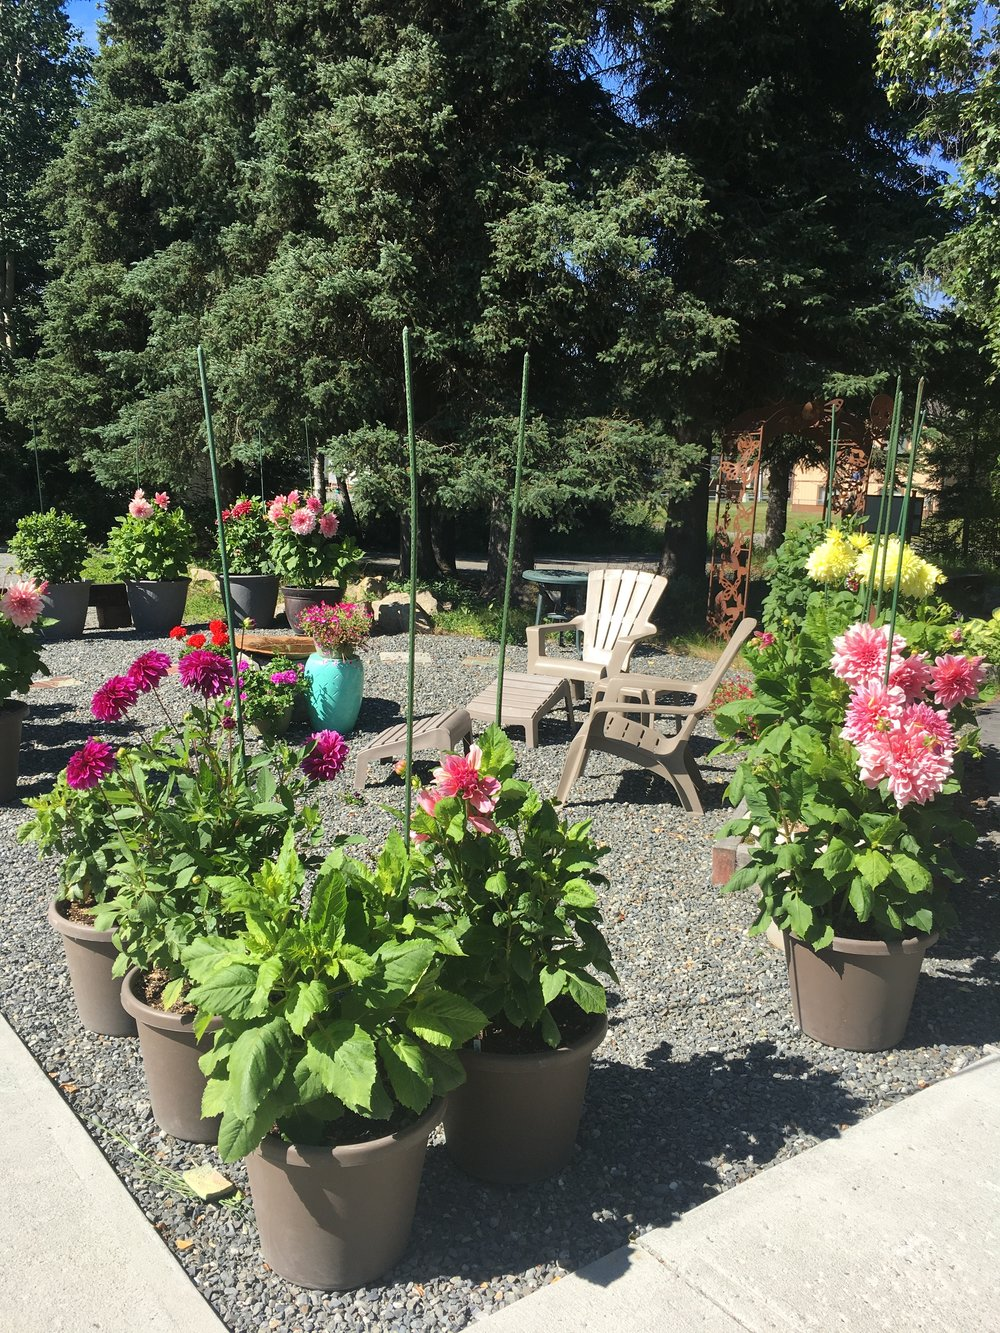 Our patio area and dahlia garden.